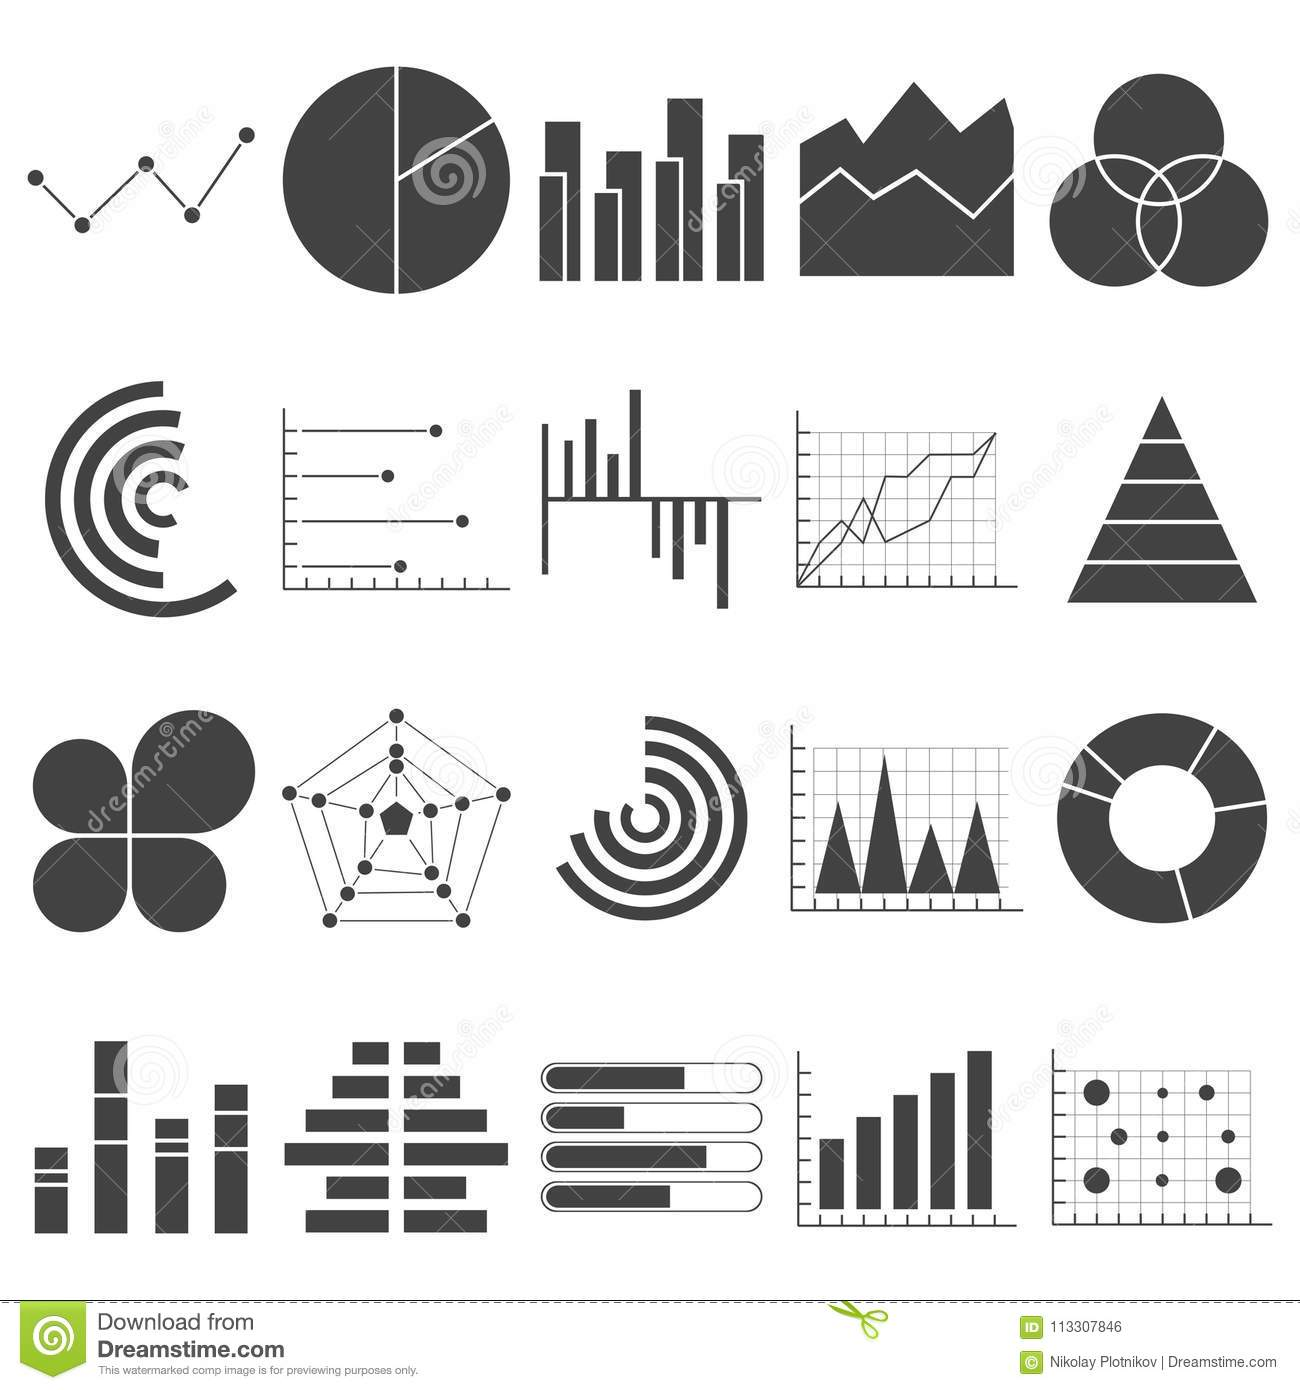 business data graphs icons  financial and marketing charts  market elements dot bar pie charts